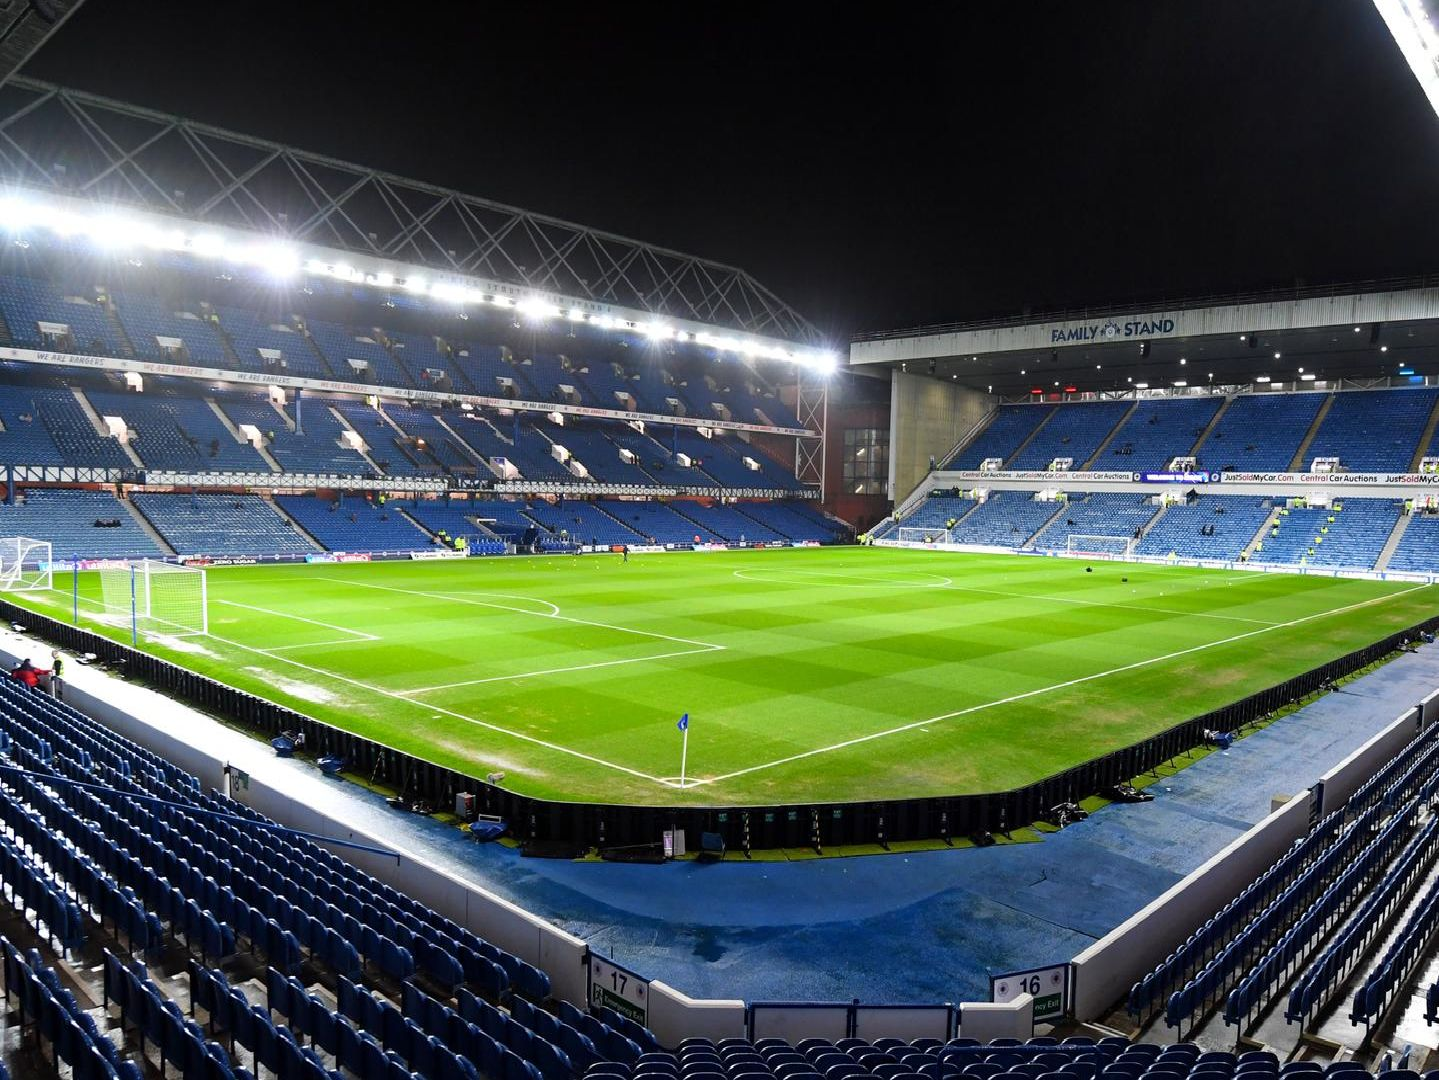 A general view of Ibrox ahead of a night game